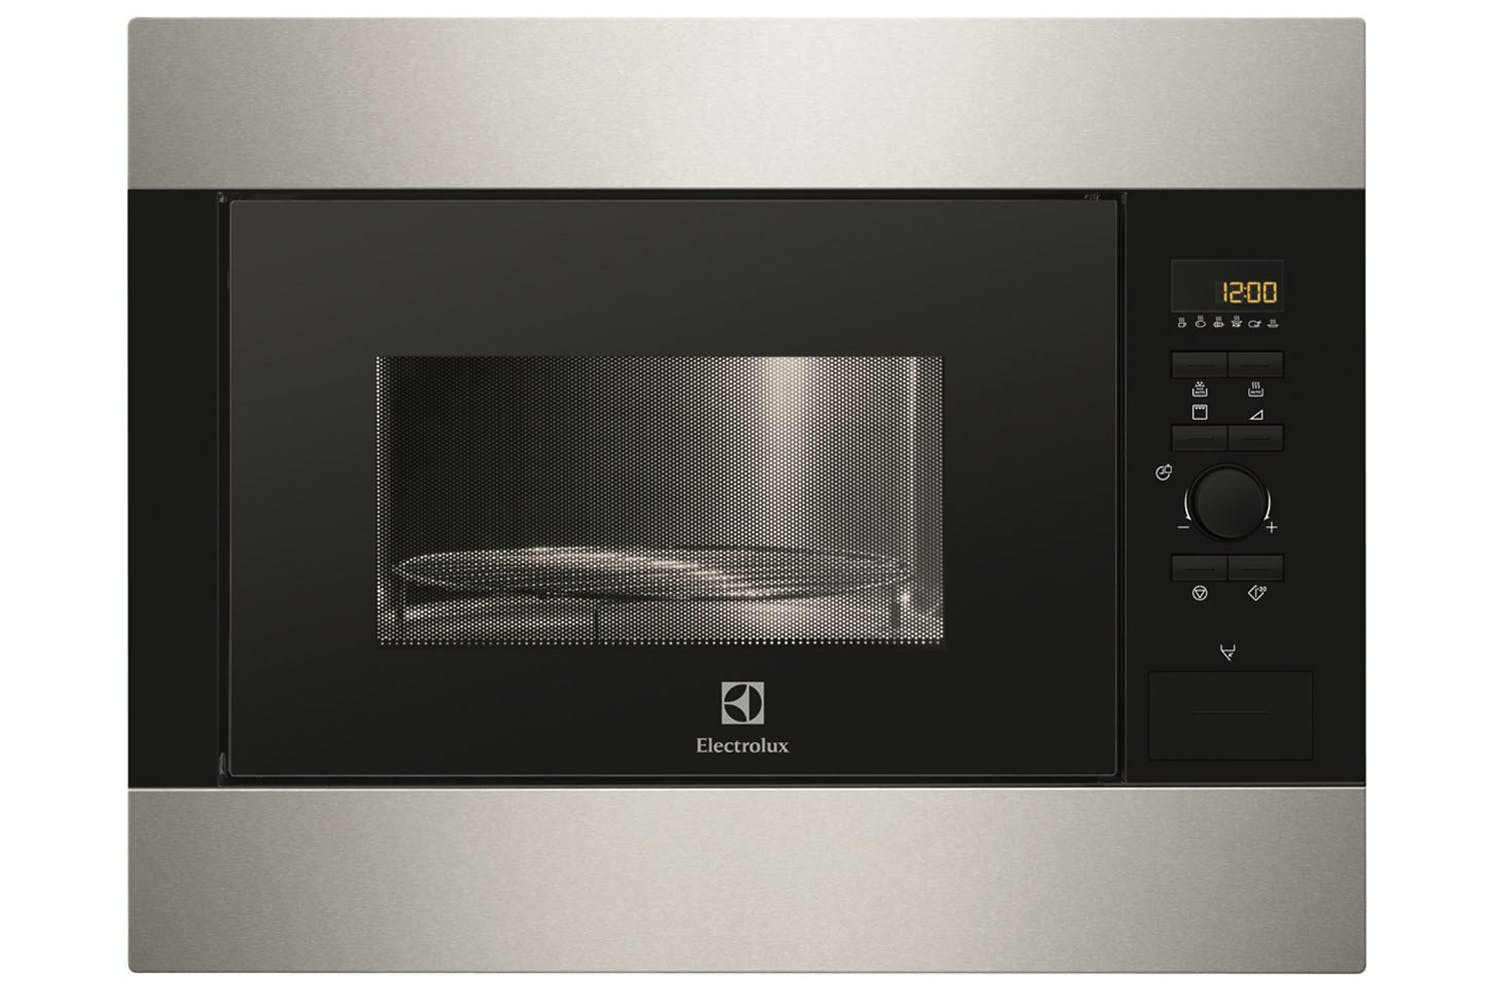 Electrolux 26l 900w Built In Microwave Stainless Steel